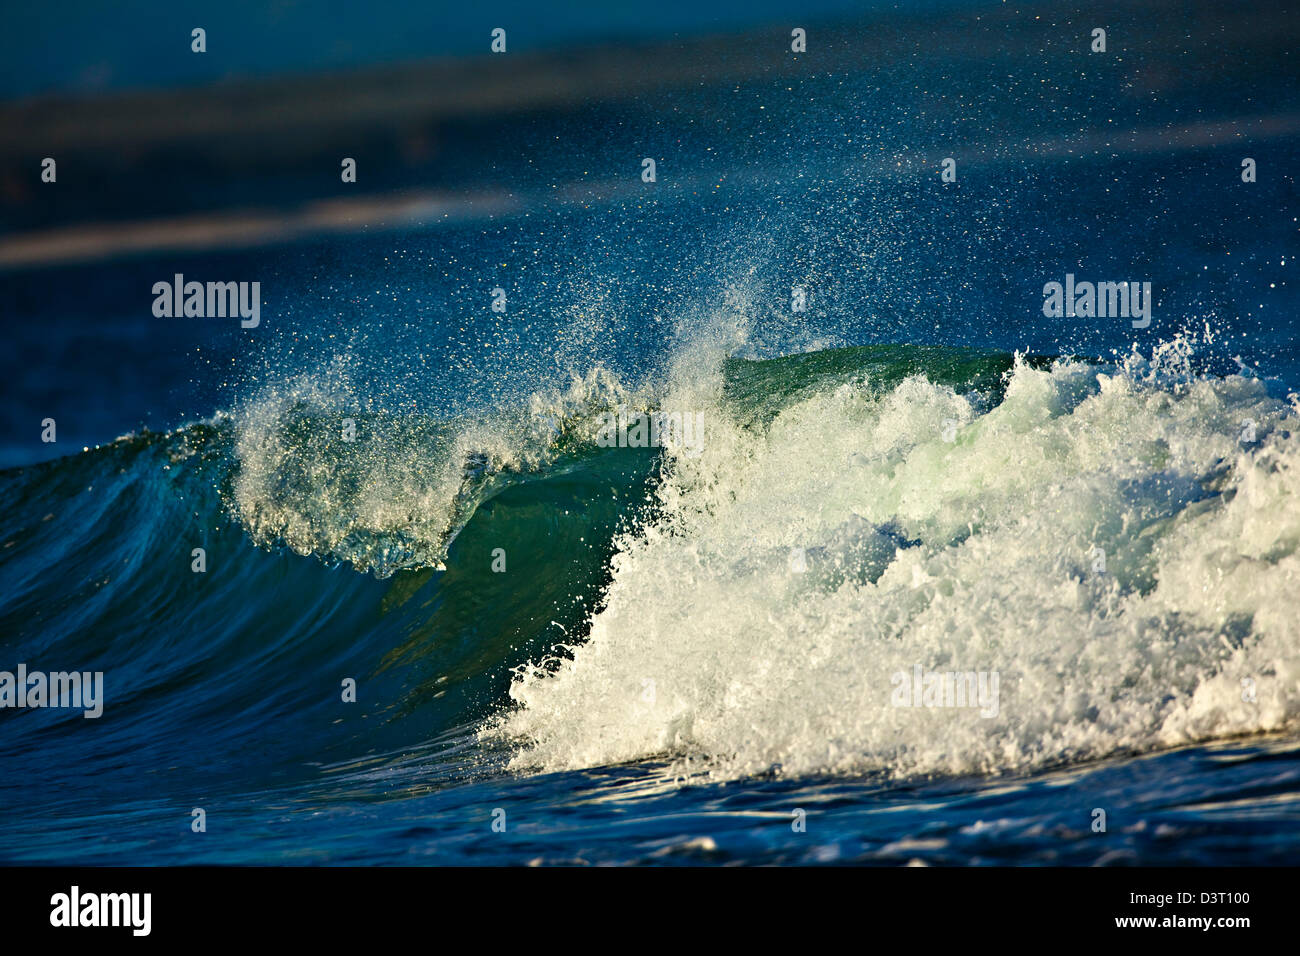 Crashing waves in Jeffreys Bay on the Indian Ocean, South Africa - Stock Image